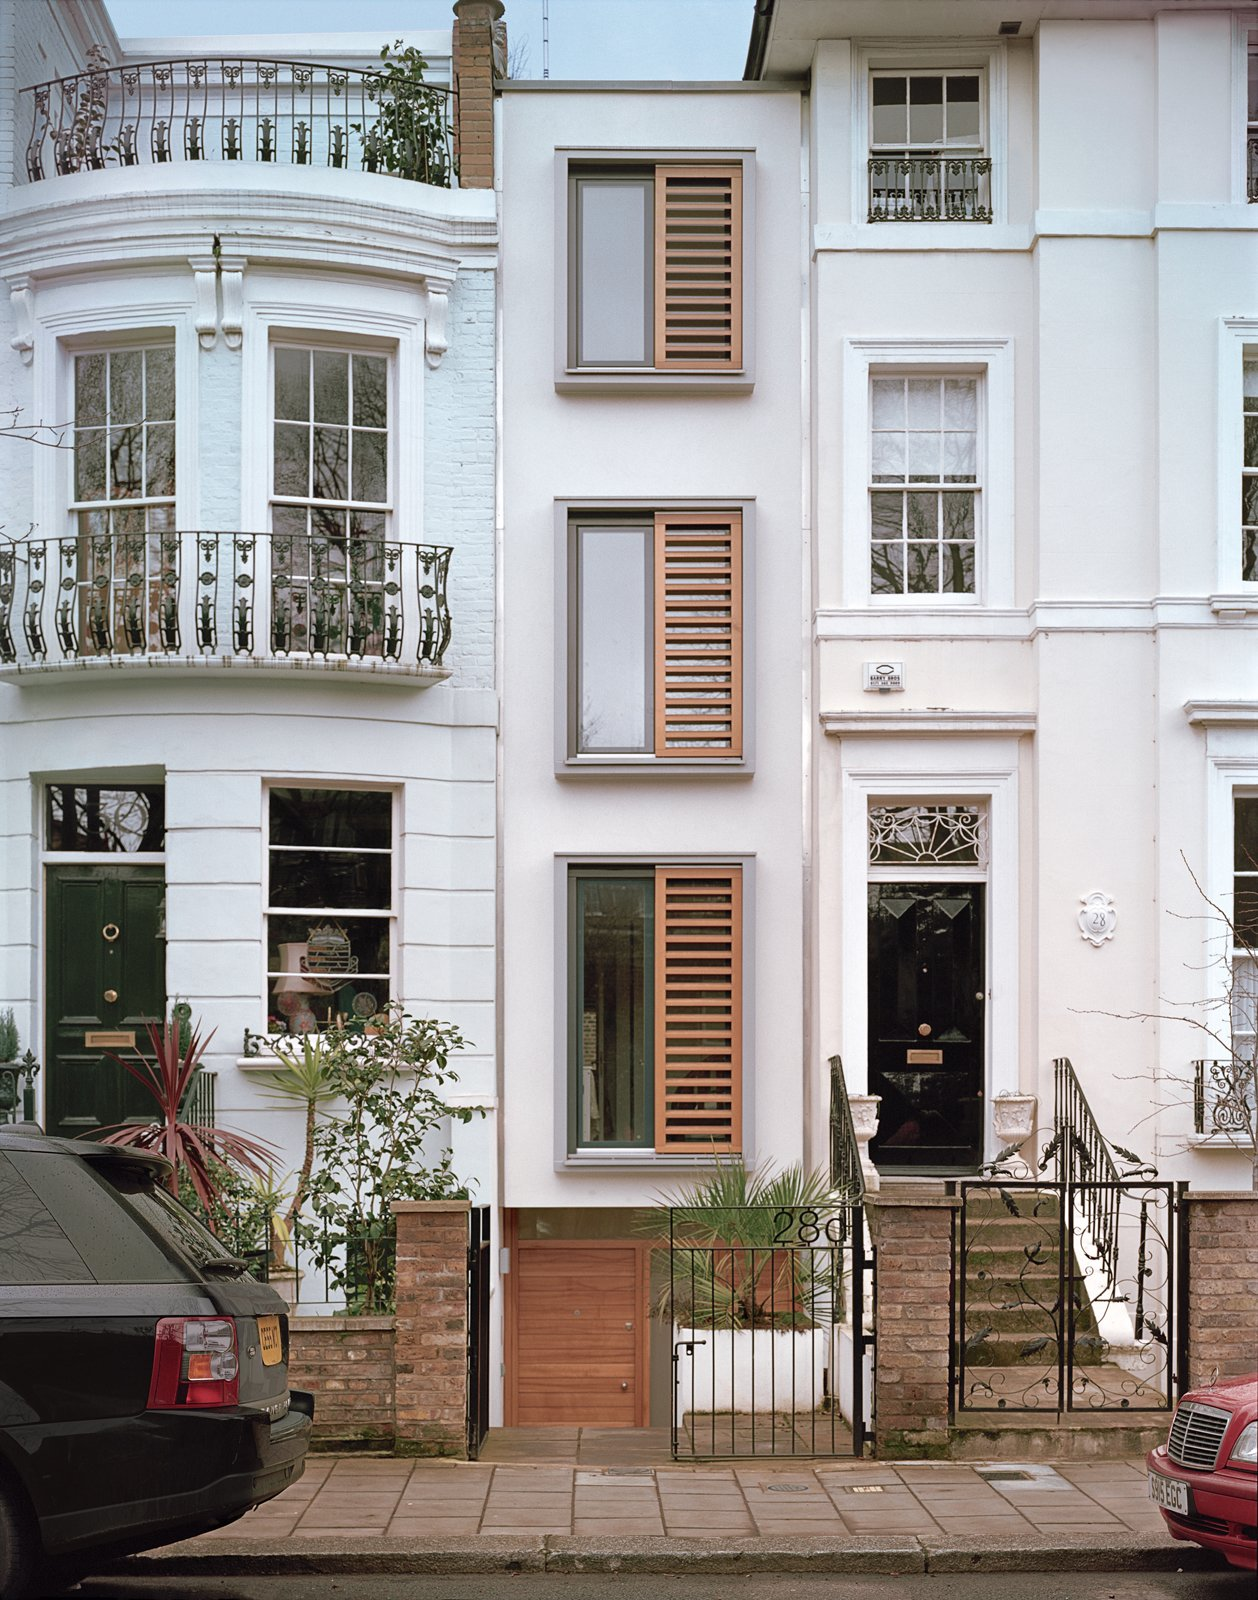 On an eight-foot-wide site in London, architect Luke Tozer cleverly squeezed in   a four-story home equipped with rain-water-harvesting and geothermal systems.  Incredibly Slender Houses by Luke Hopping from A Slender Geothermal Cottage in London